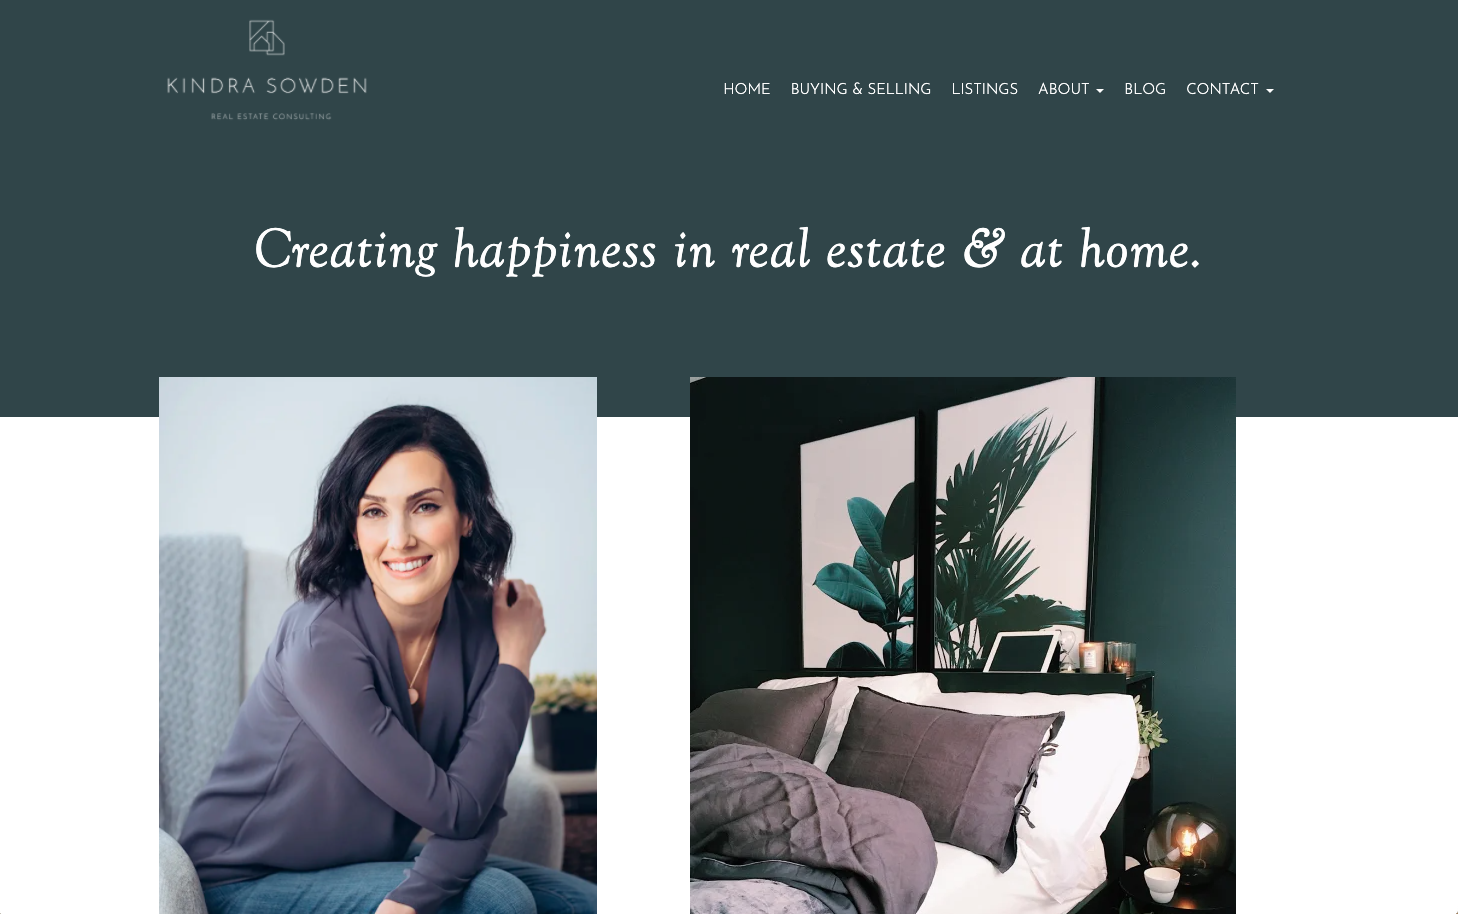 Kindra Sowden real estate website